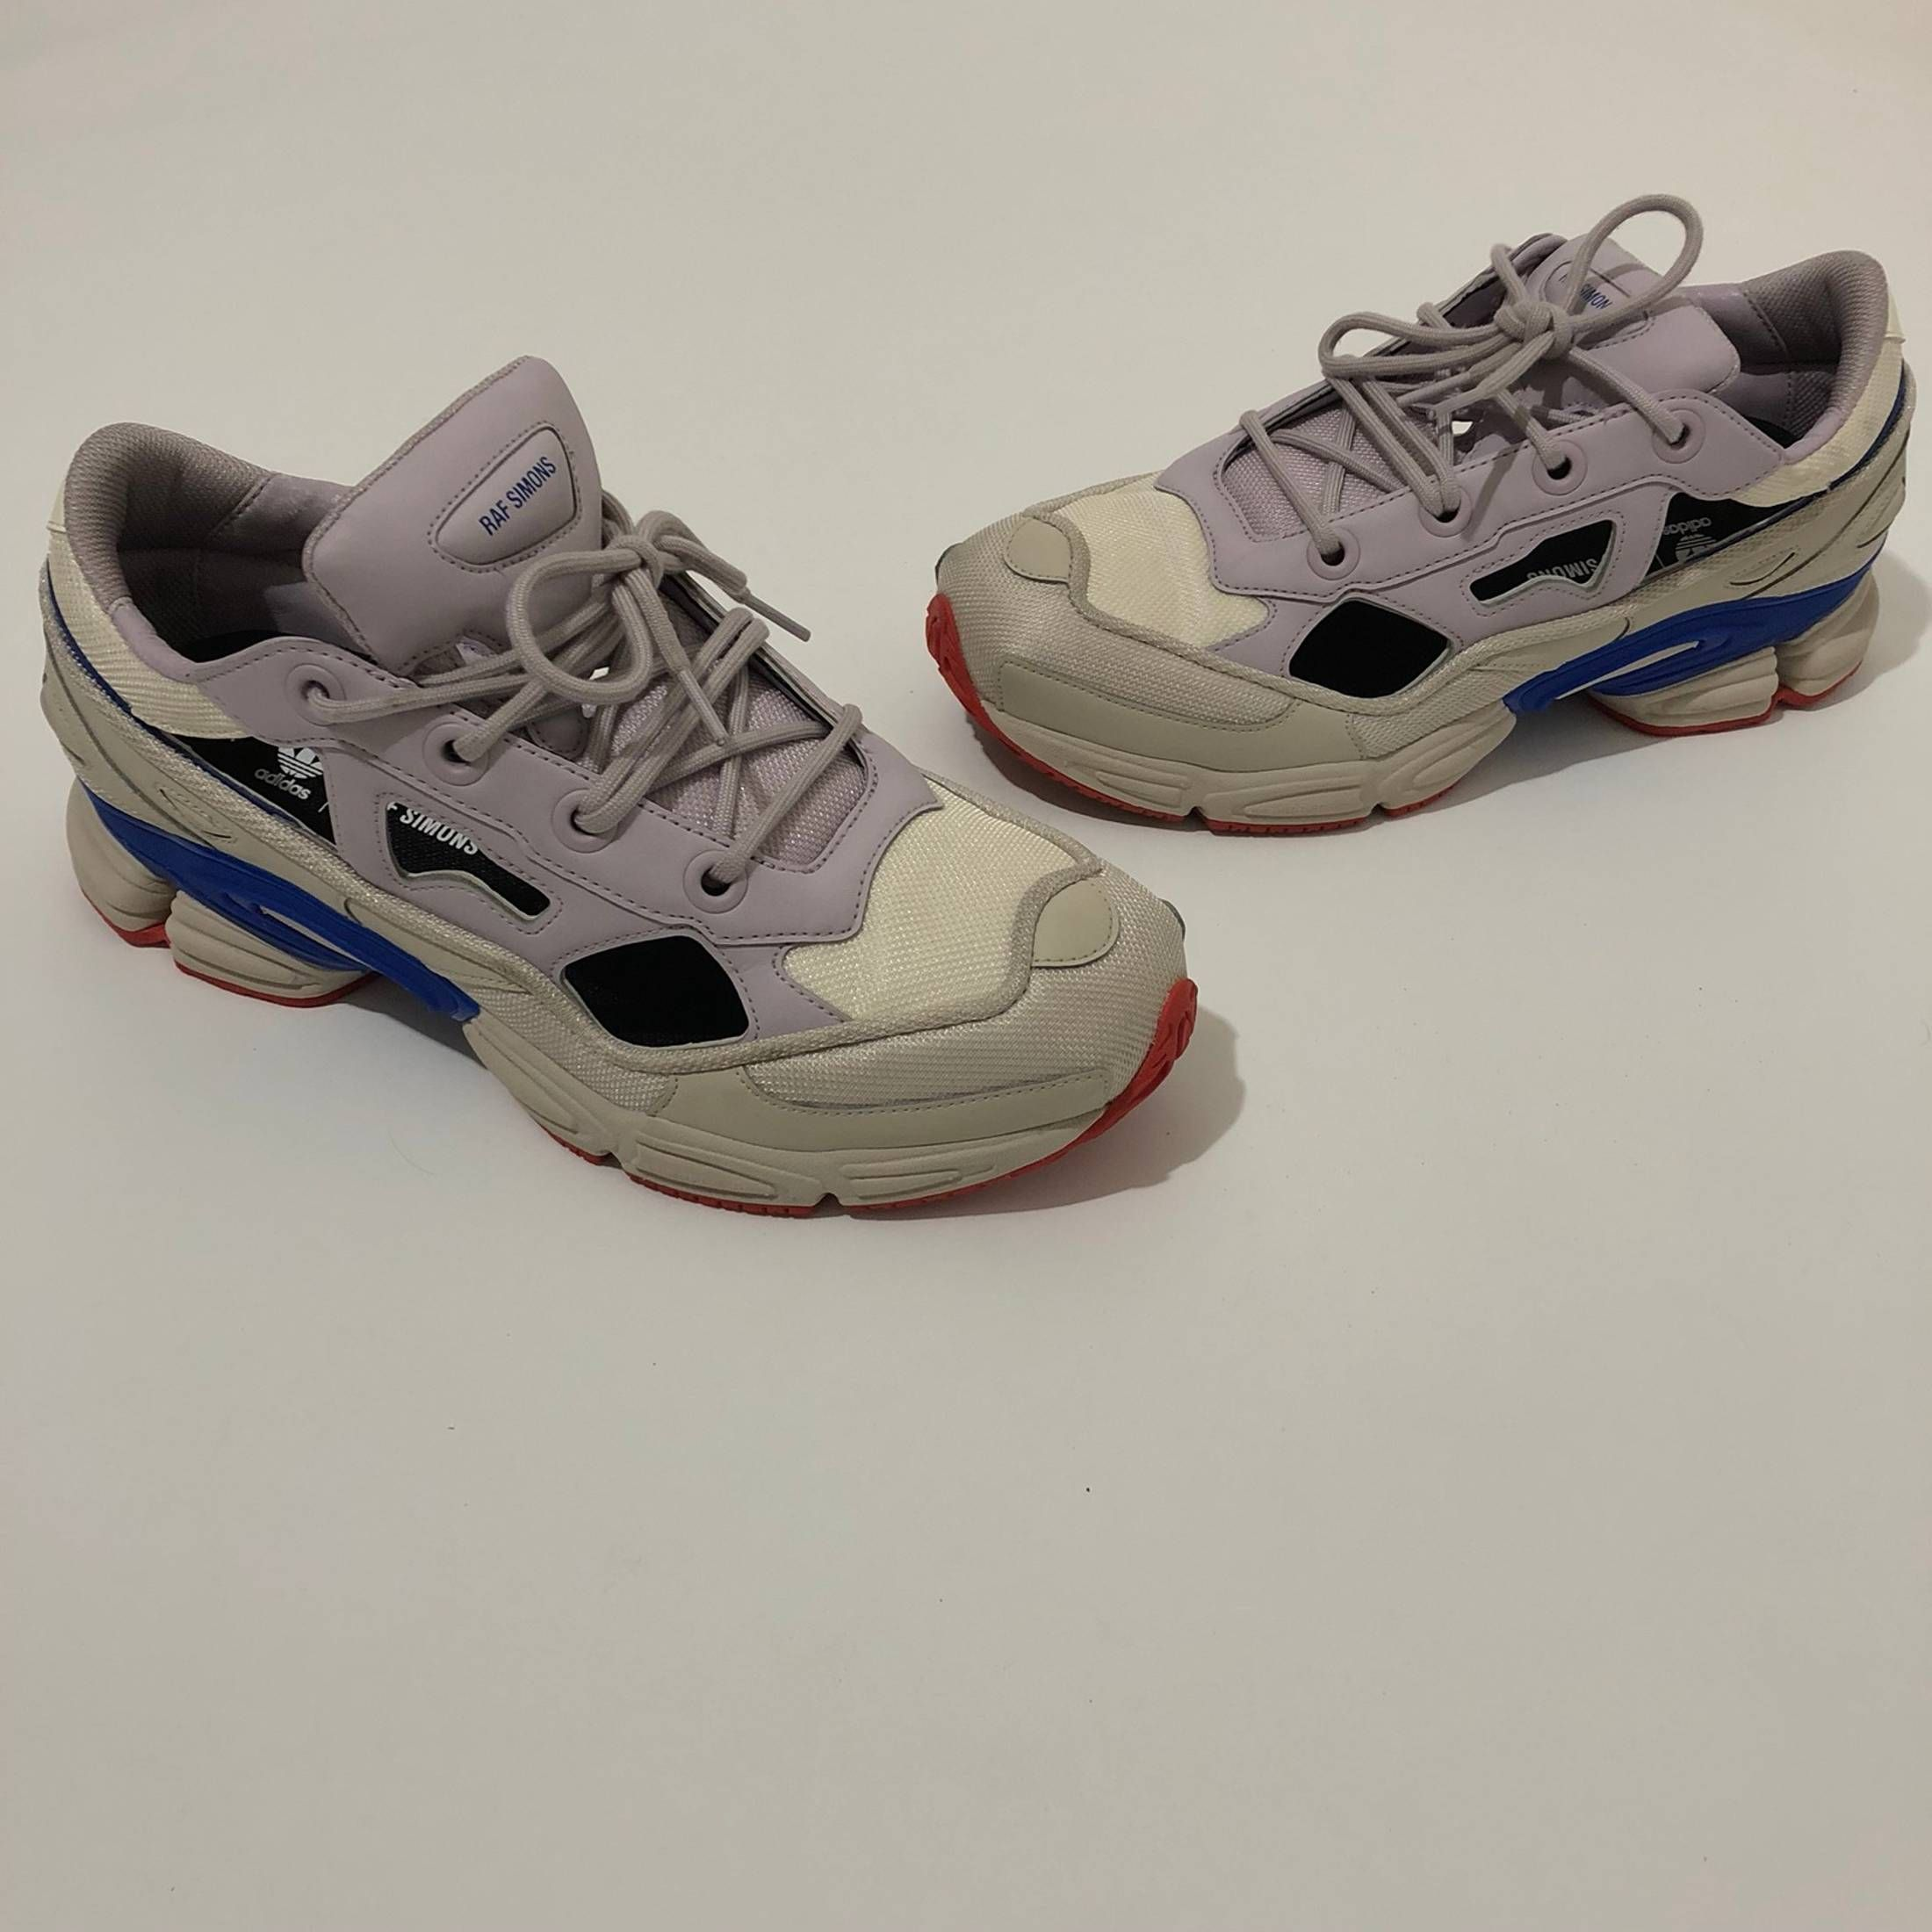 big sale 86ac1 acd30 Adidas x Raf Simons Ozweego III White Talc BB6742 Size 8-13 LIMITED   STYL3Z Guide - Hottest Women  Mens Fashion  Raf simons, Raf simons  sneakers, Adidas